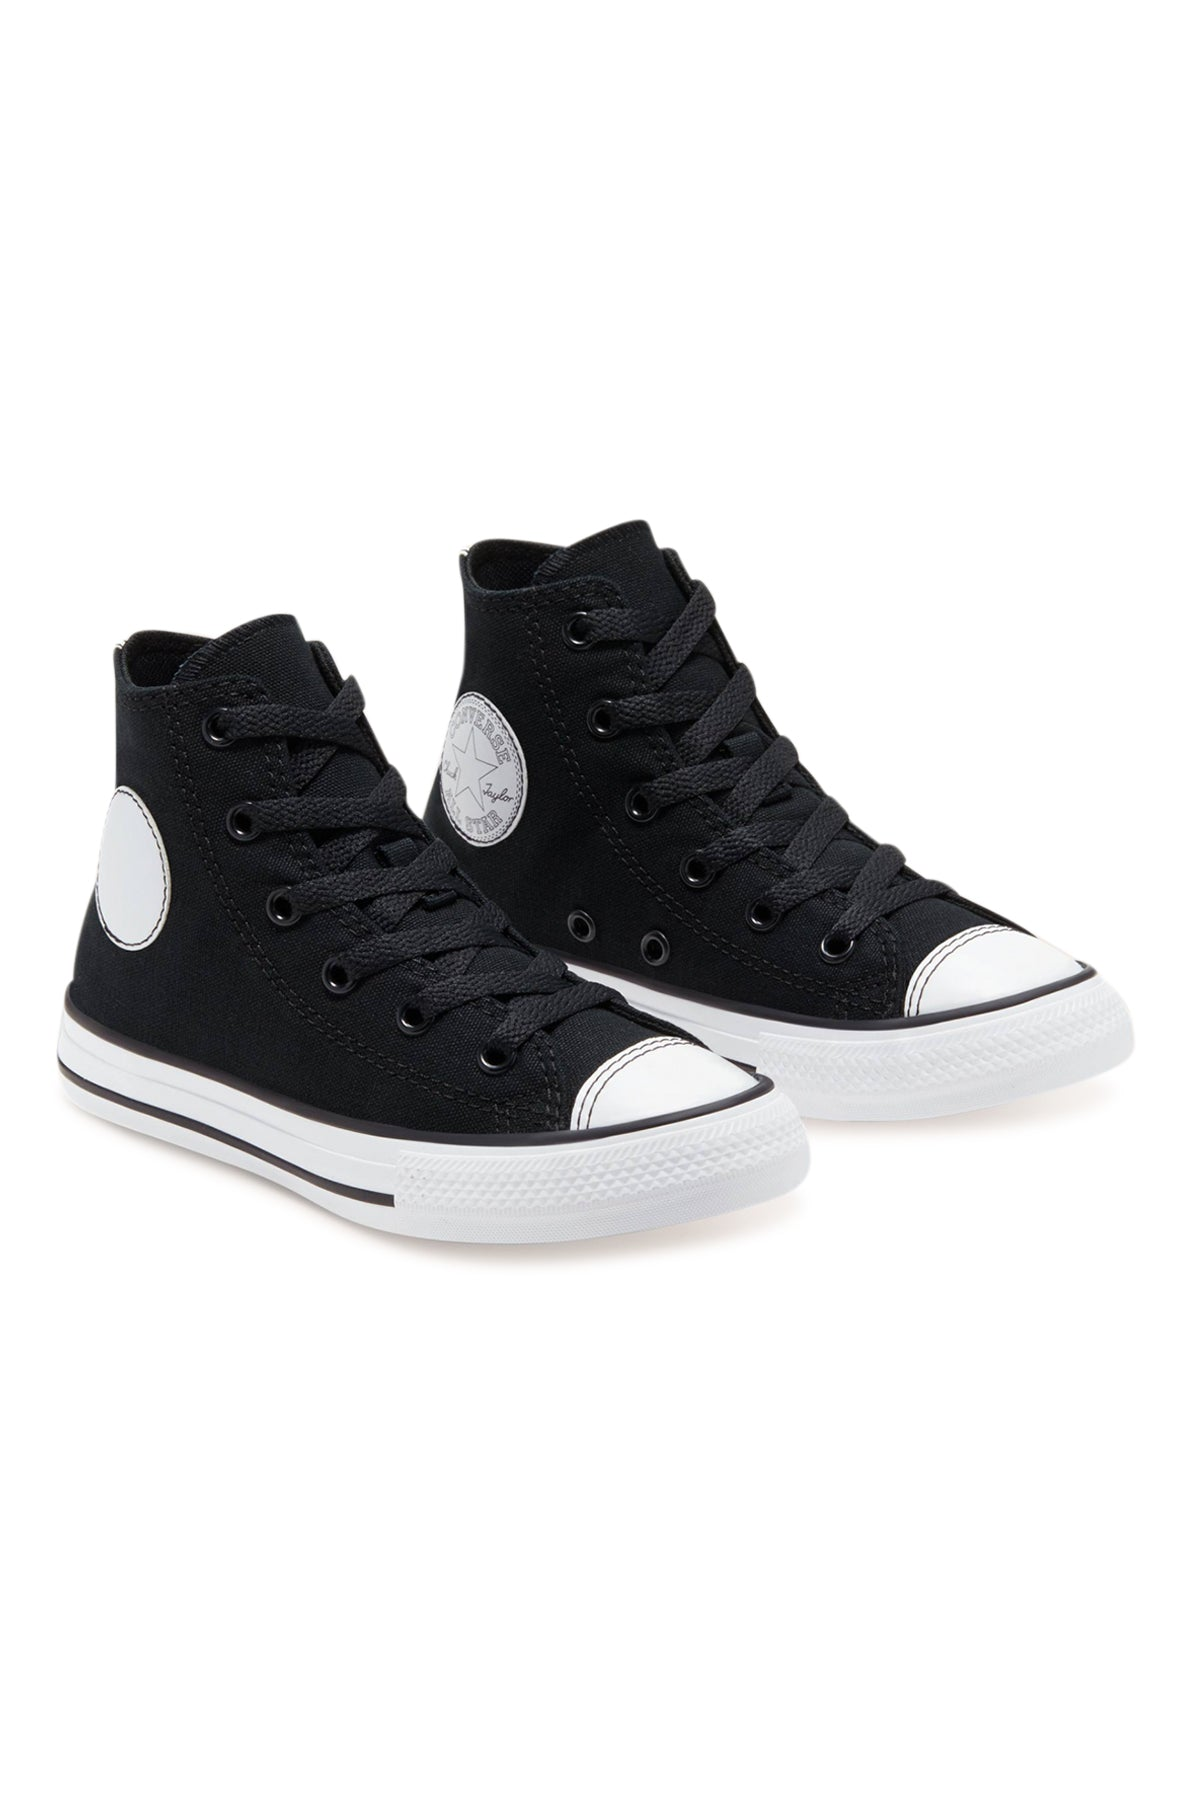 Converse Youth CT Passing Notes Hi Black